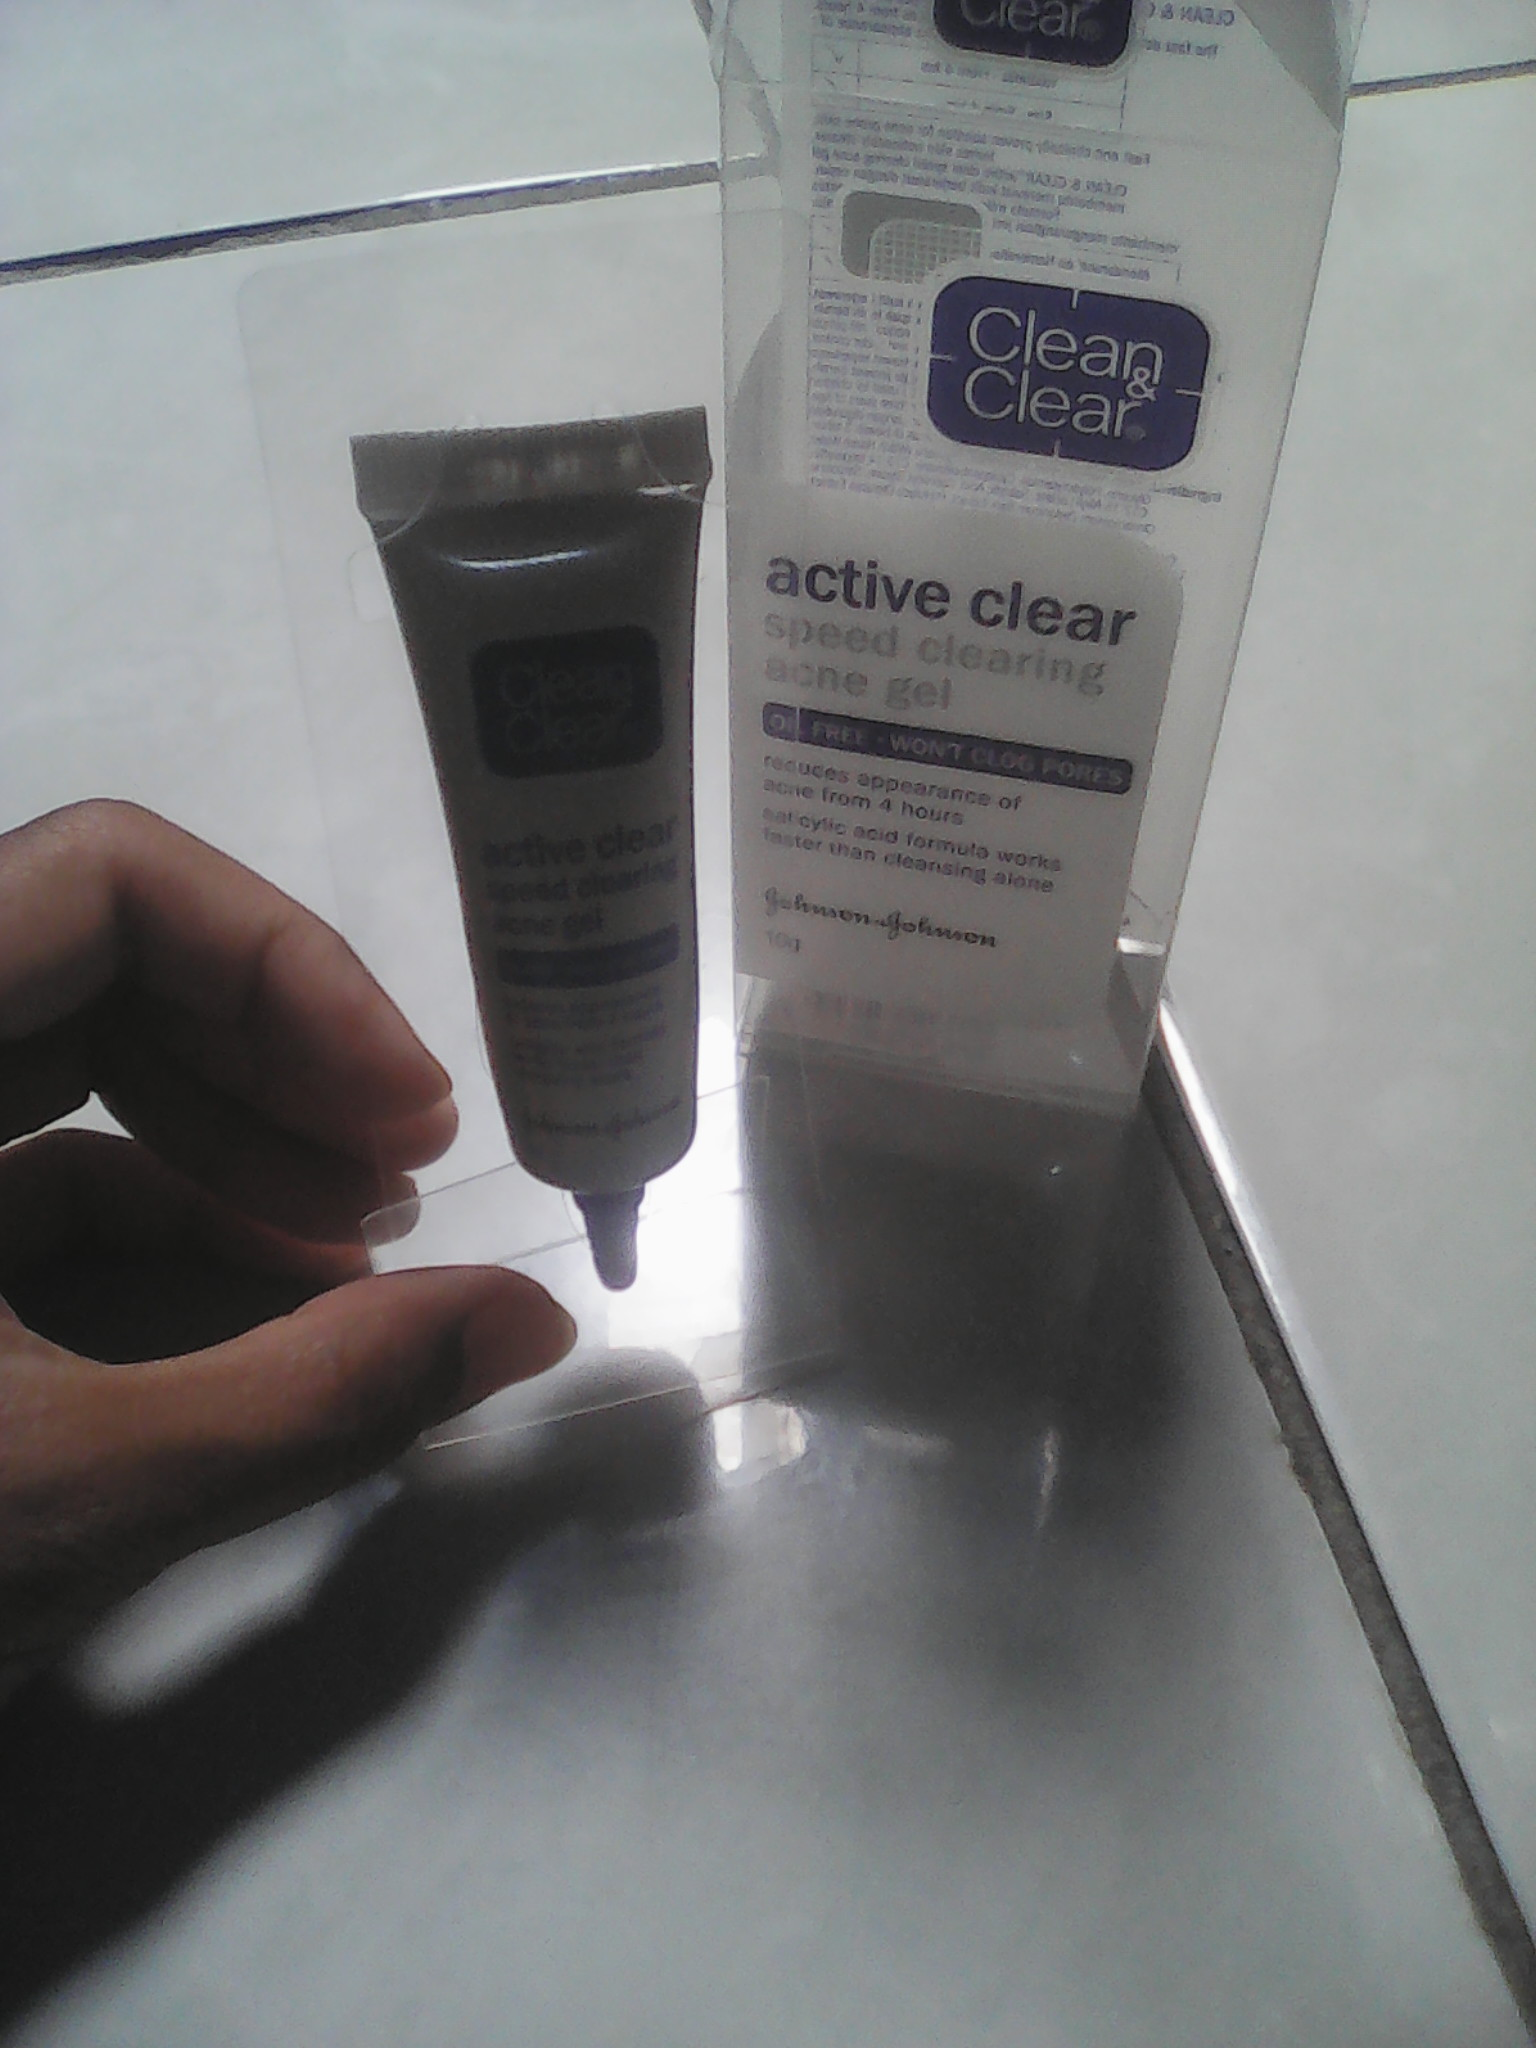 harga Clean and Clear active clear speed clearing acne gel Tokopedia.com